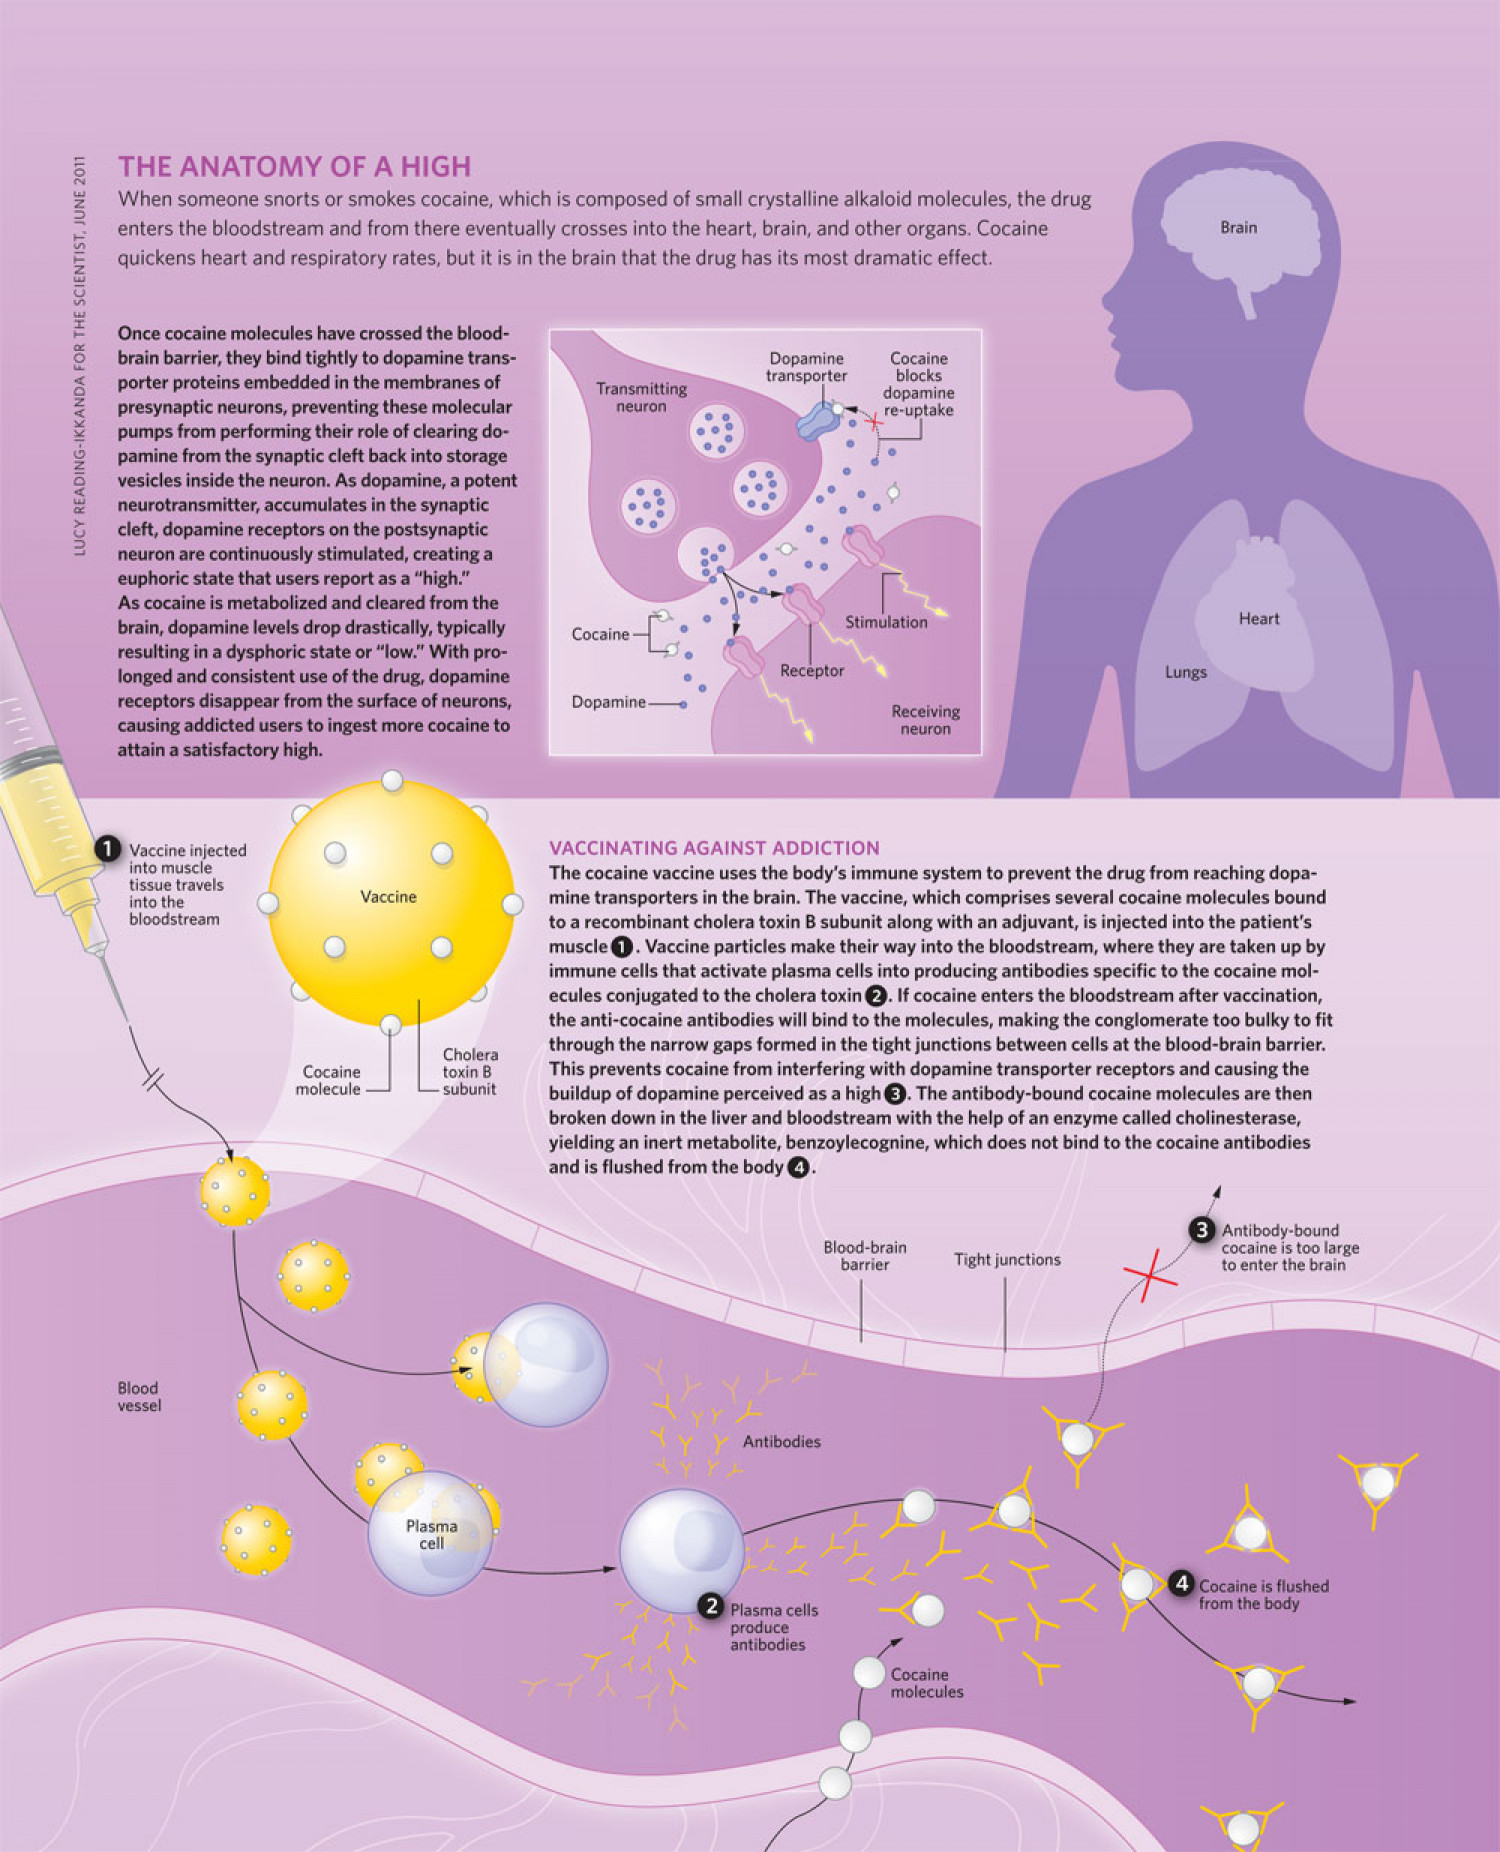 The Anatomy of a High Infographic